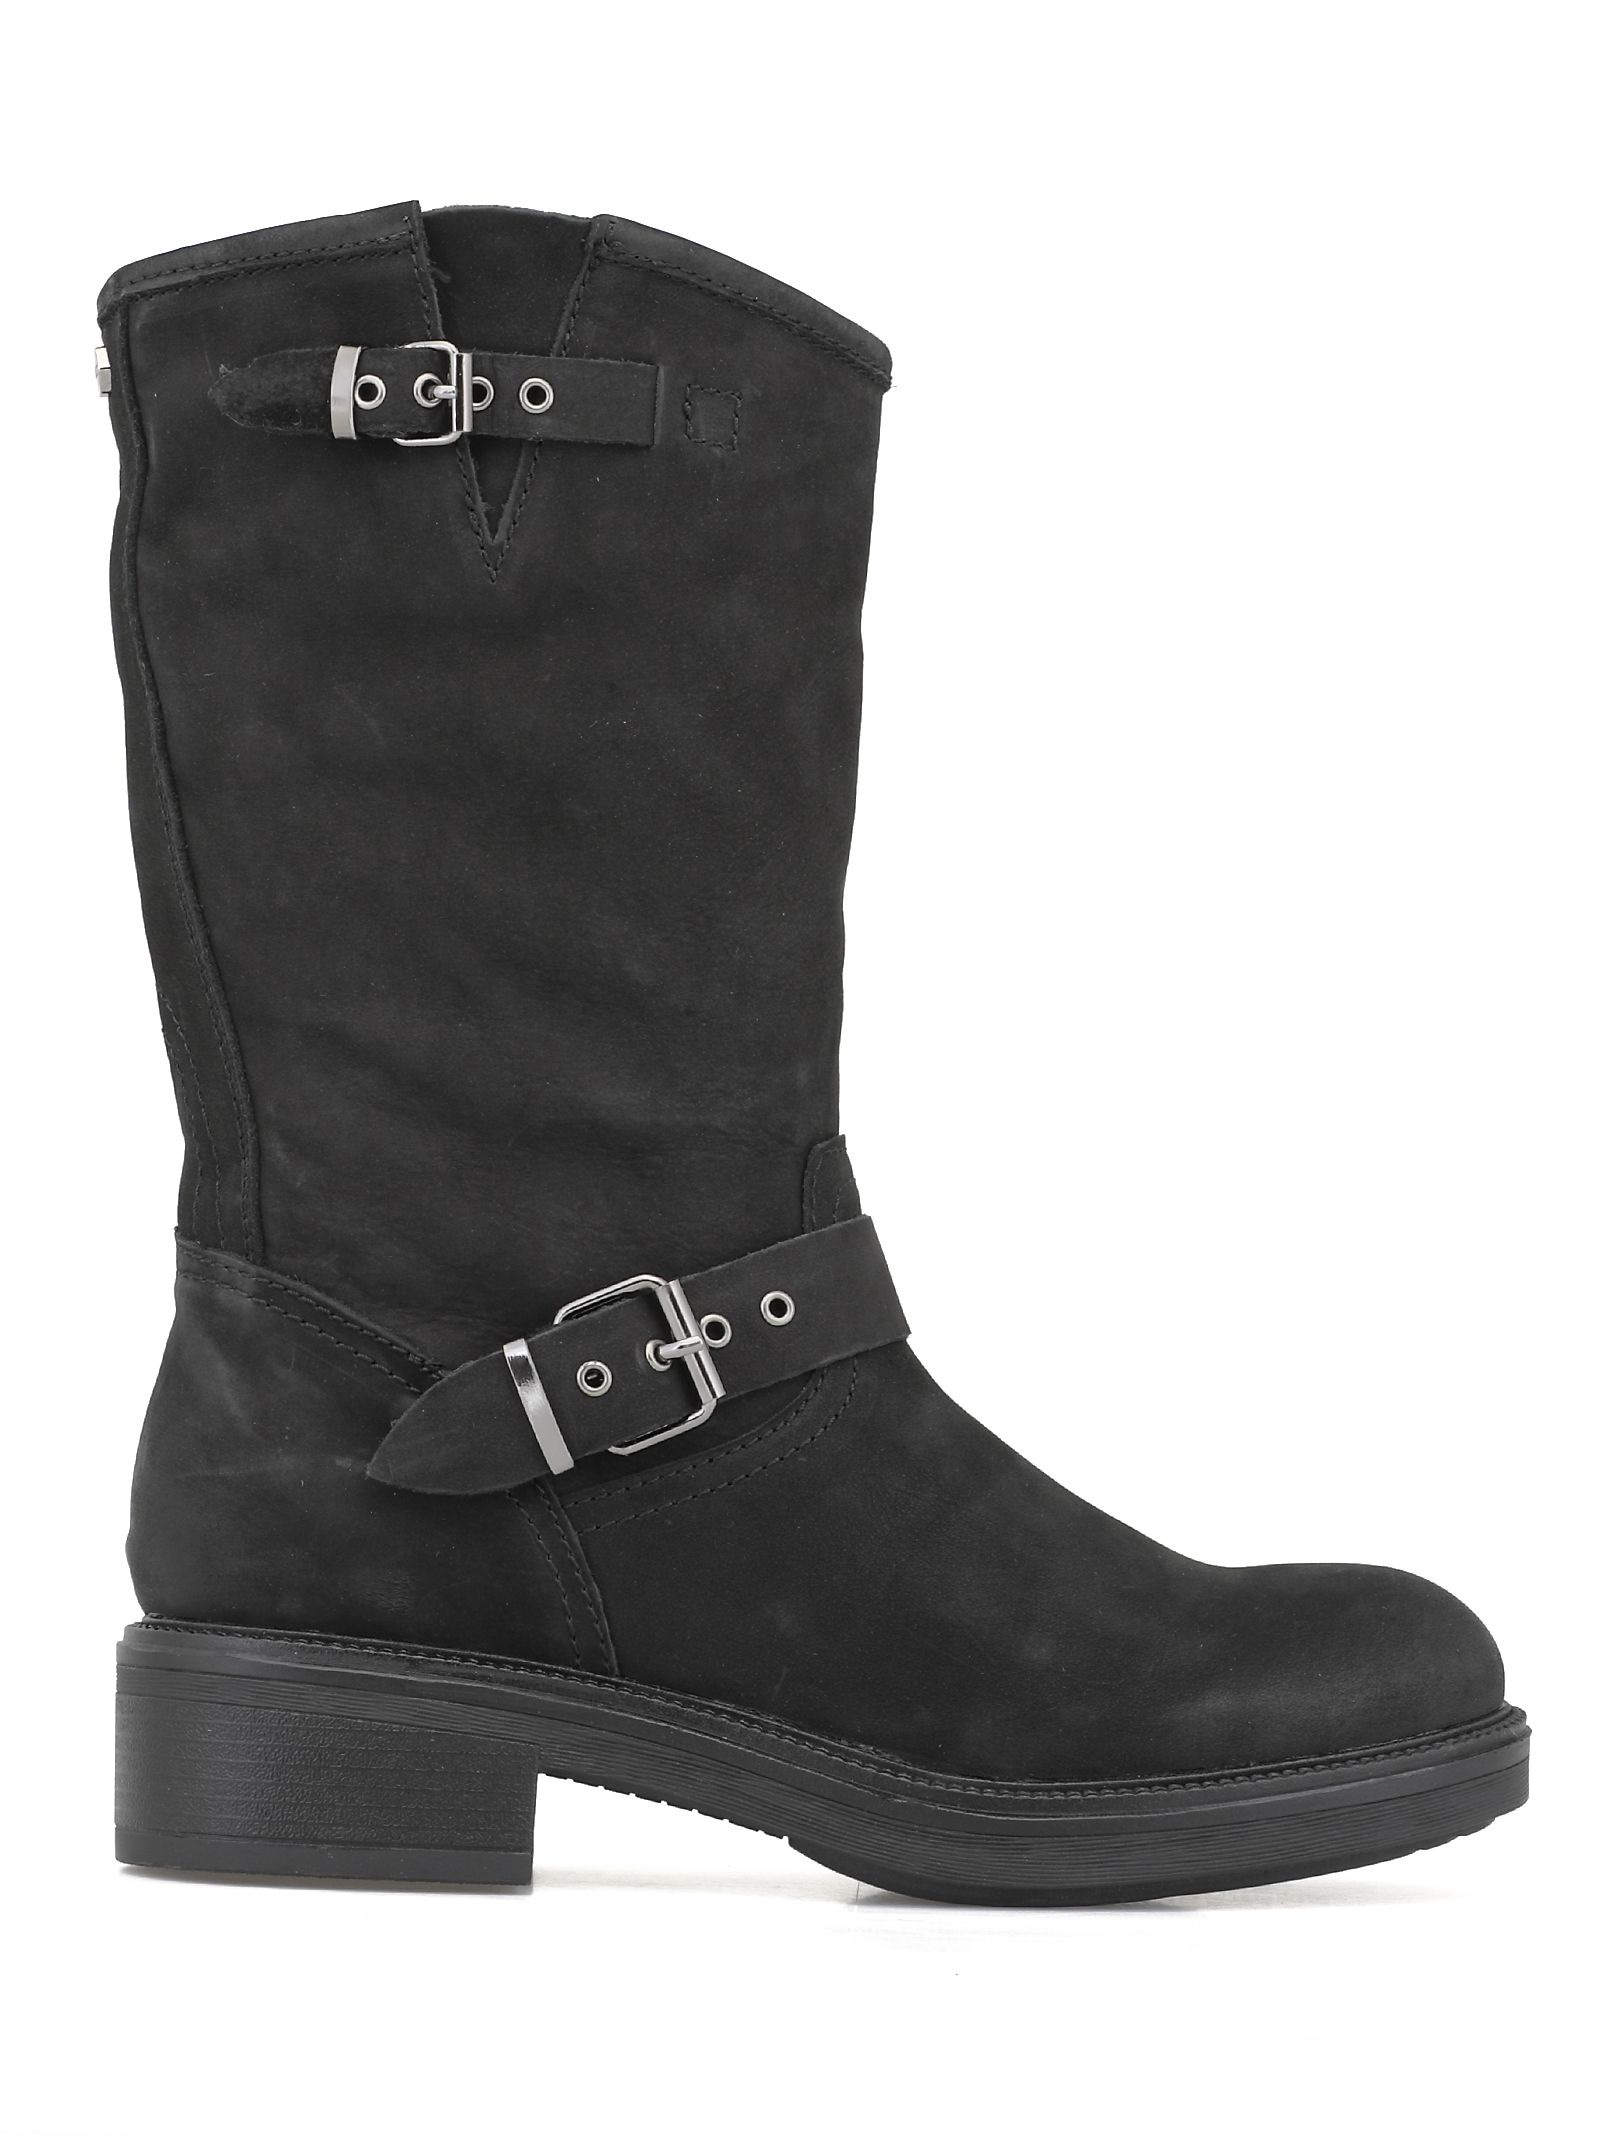 CULT Who Mid Boot 2504 in Black